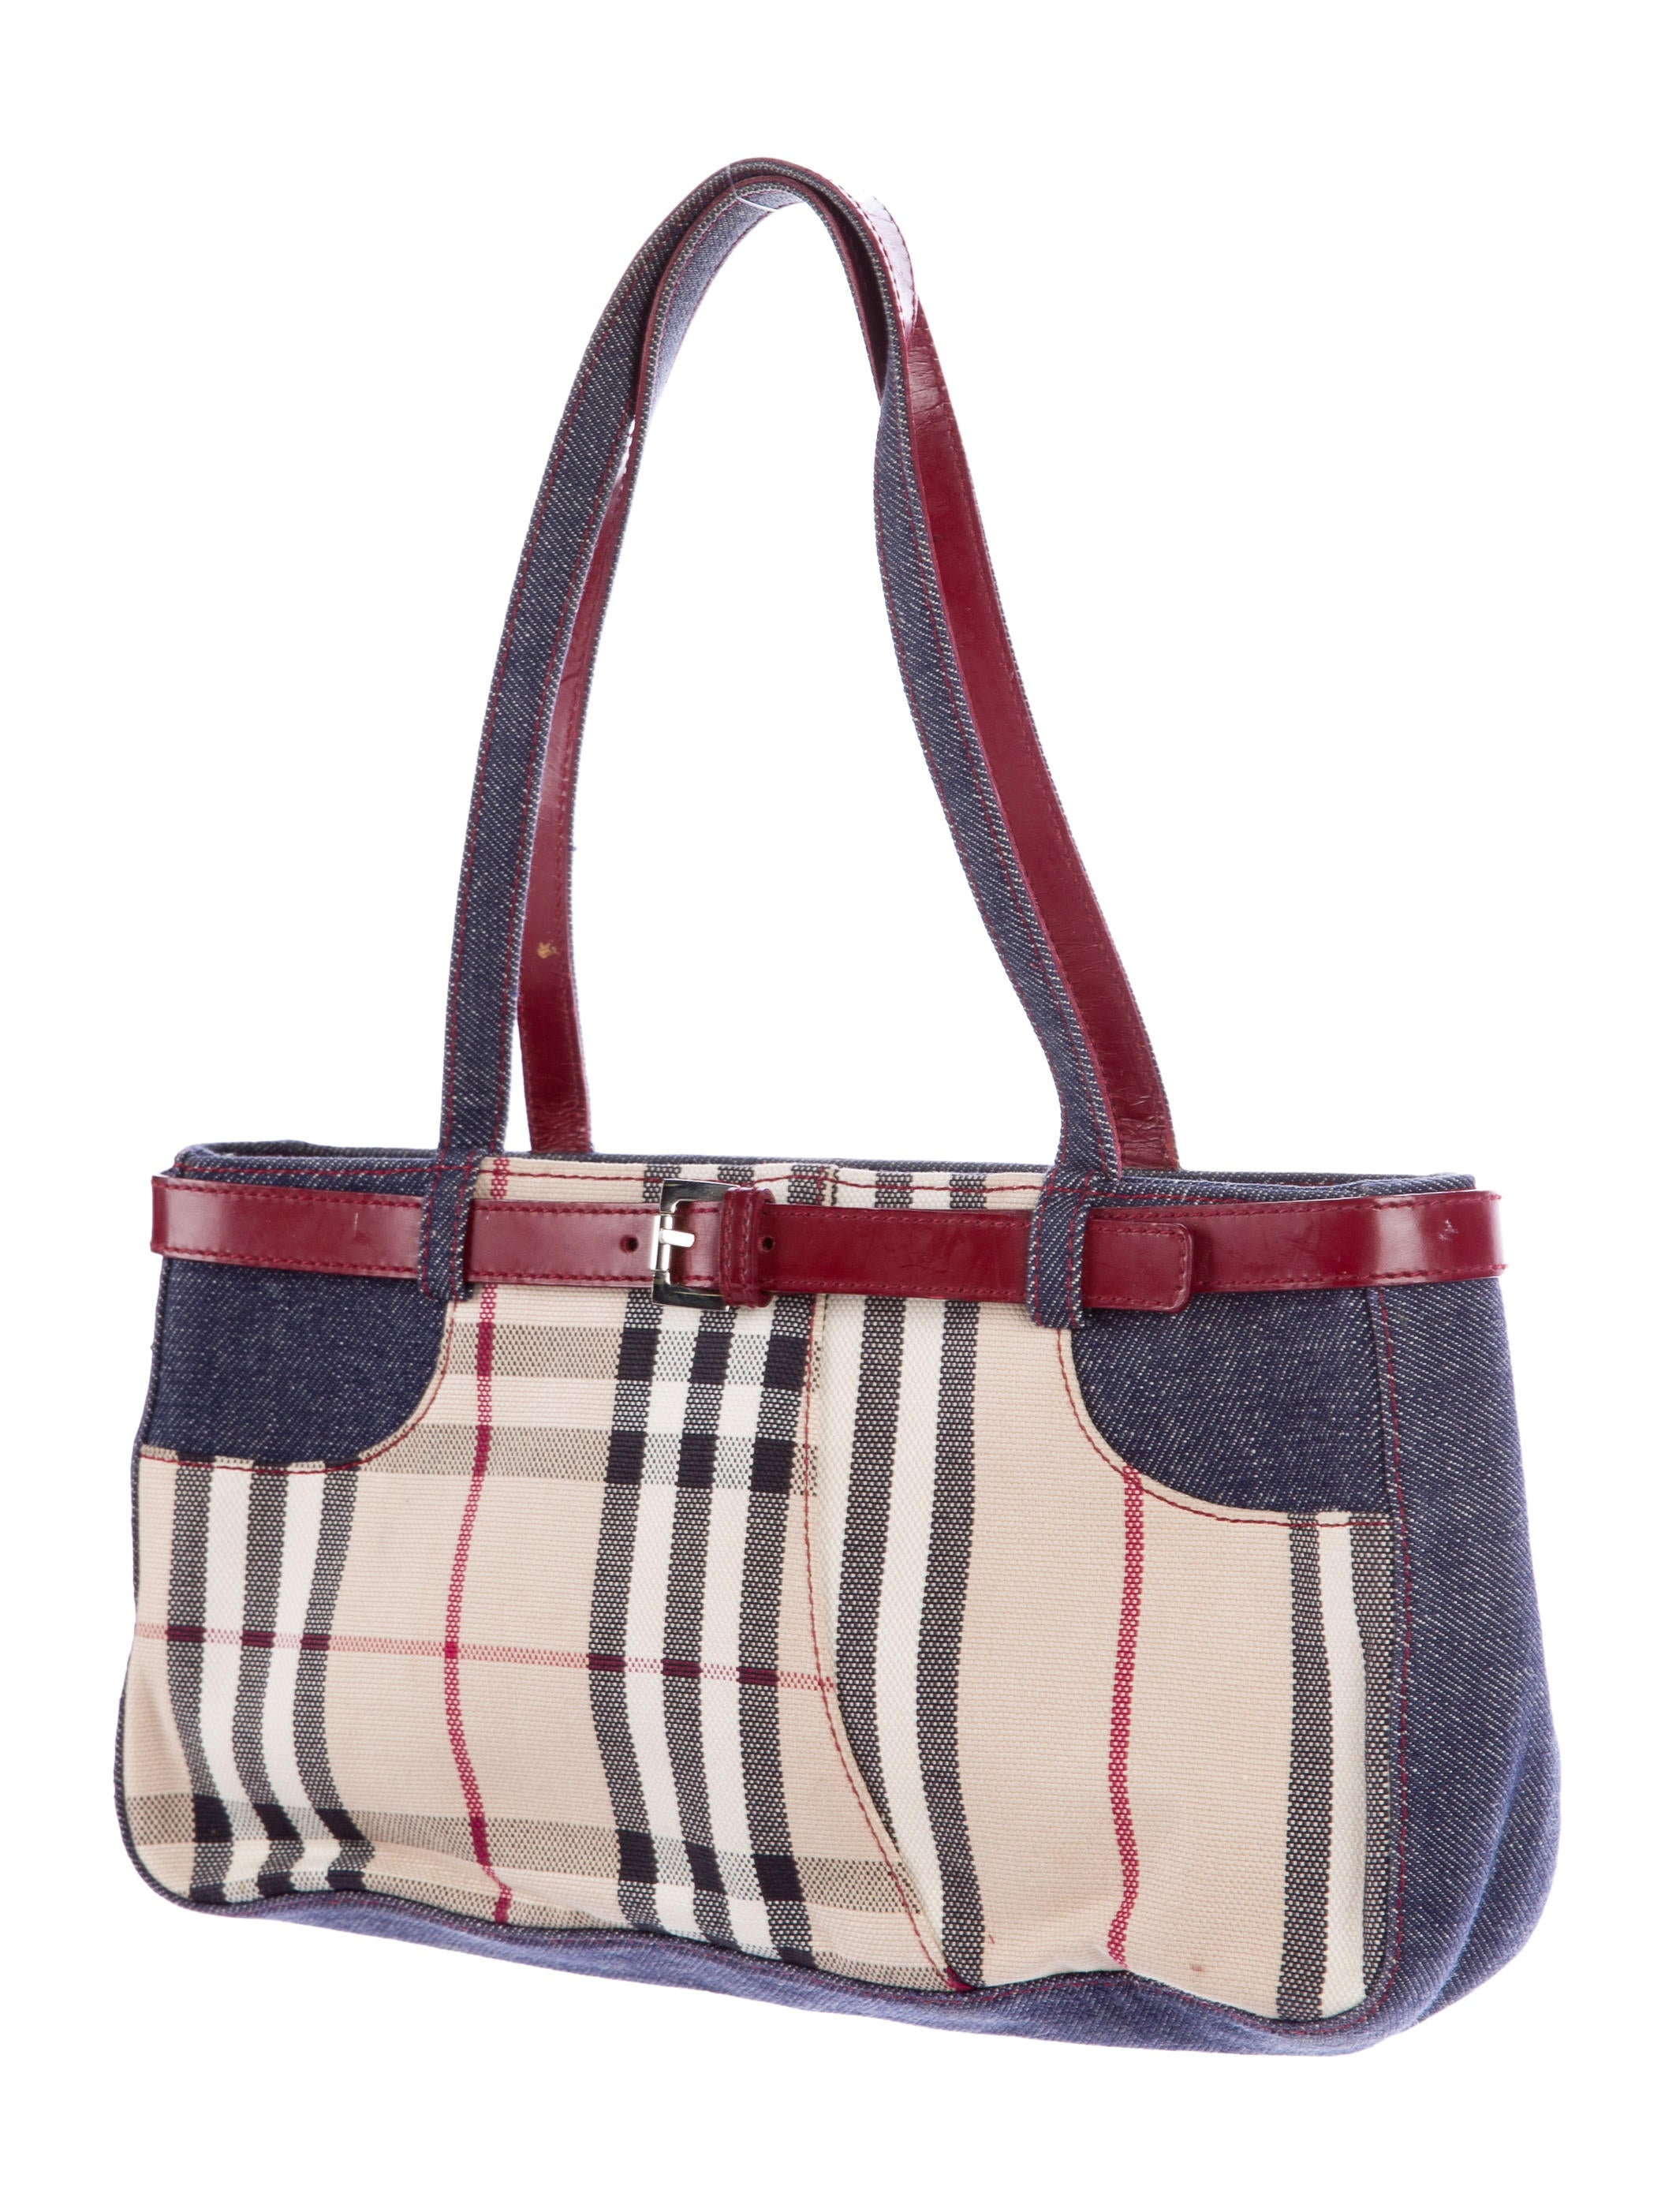 7bdd542e581c Burberry Blue Label Denim Tote